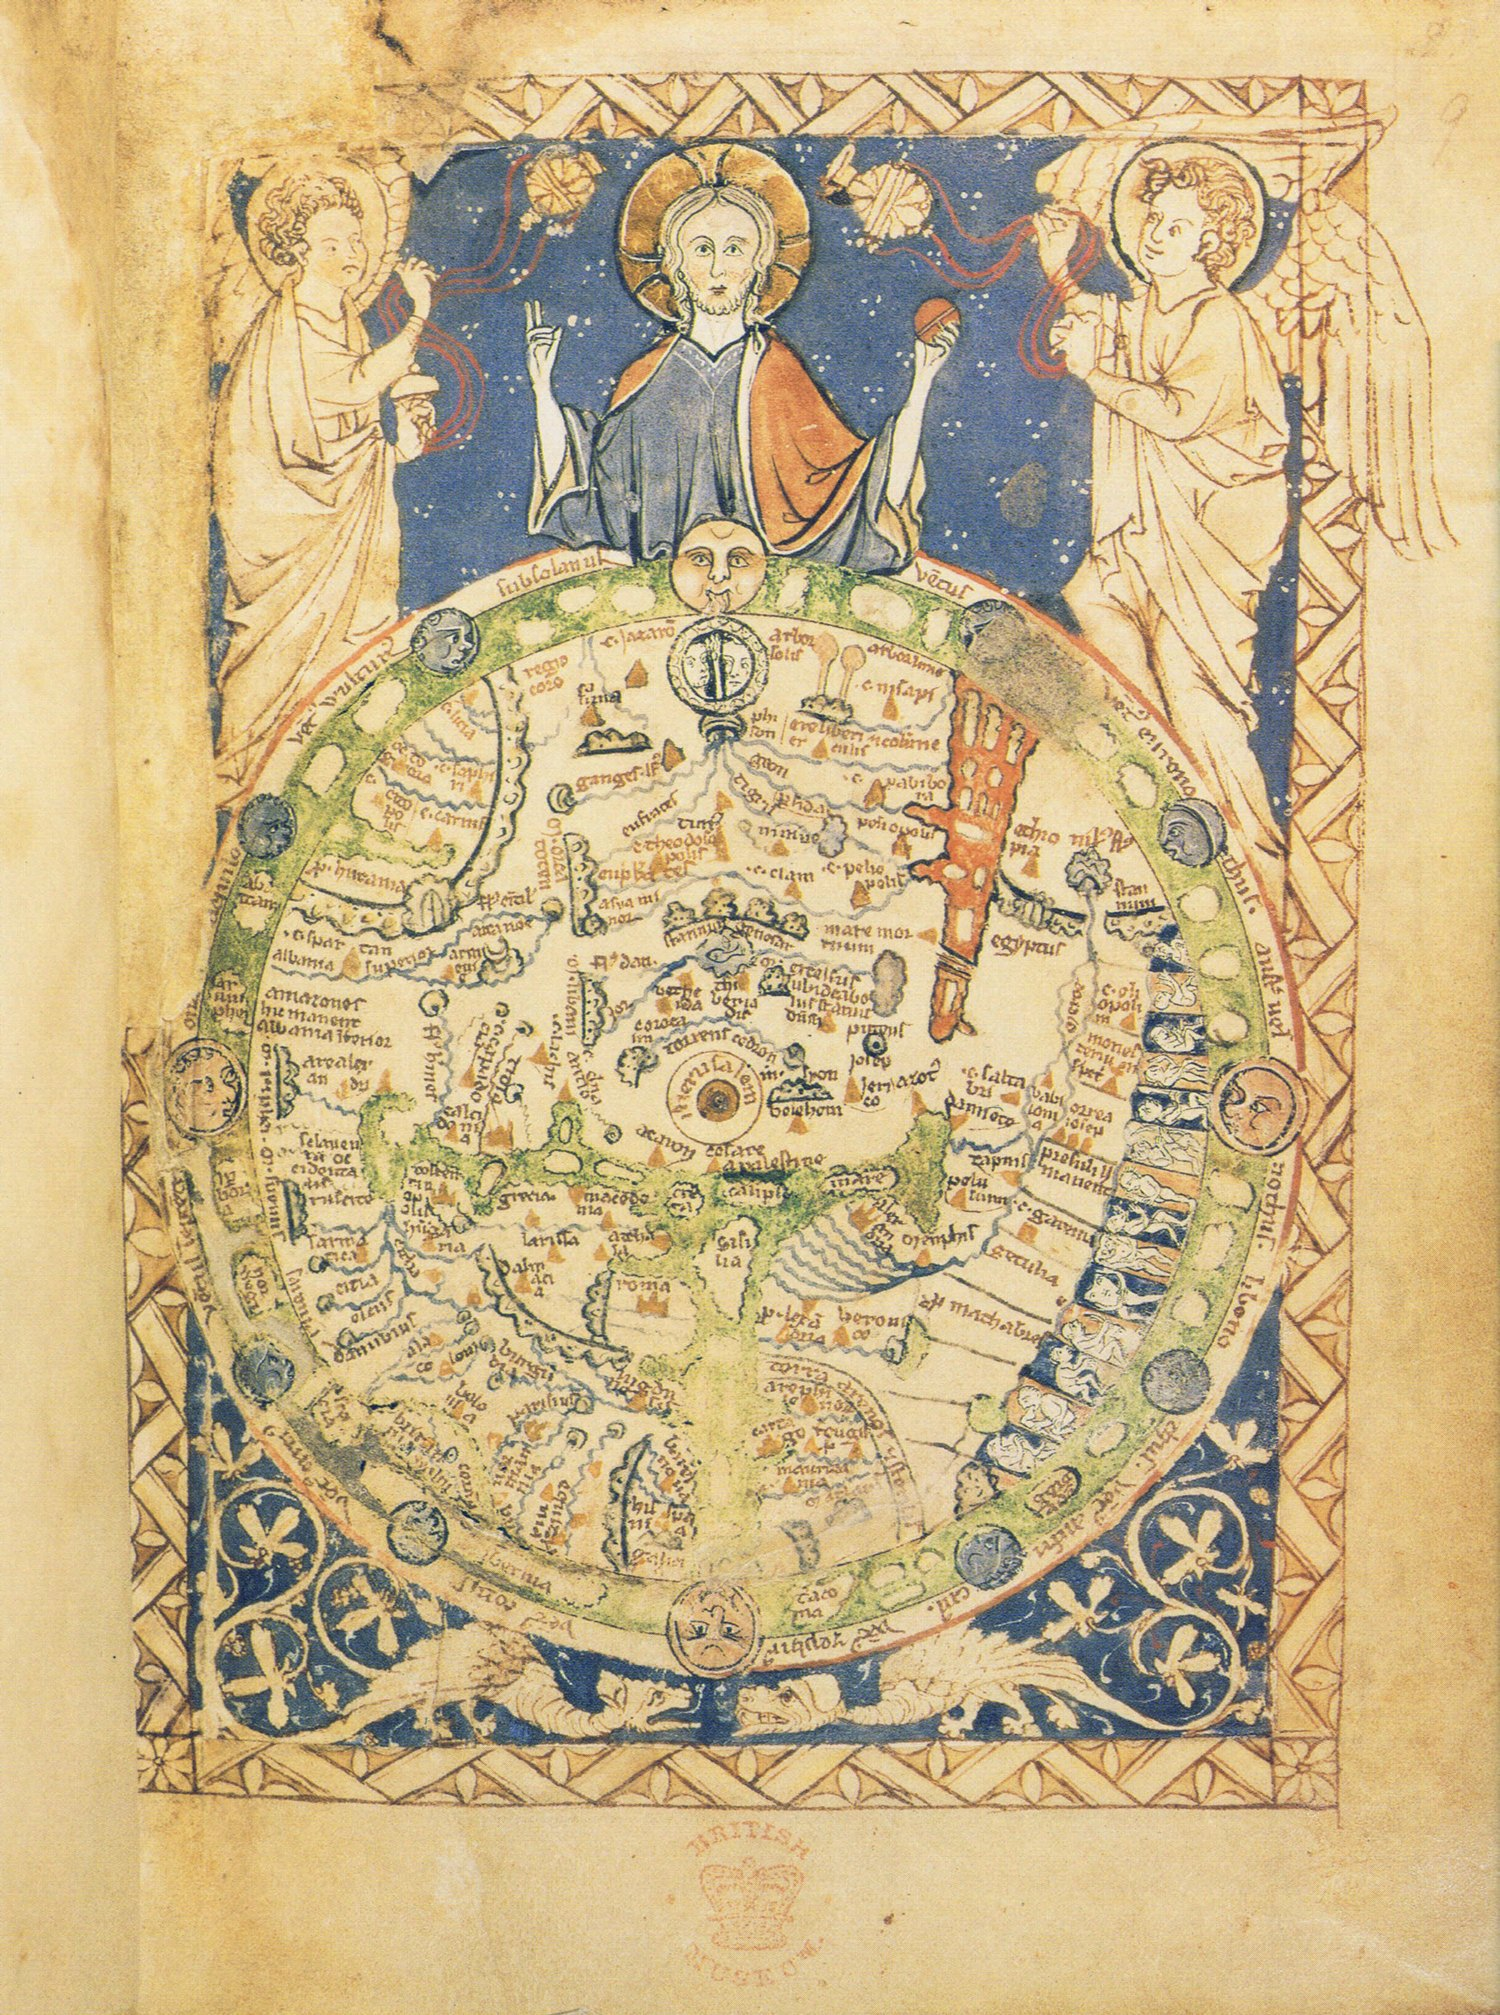 Paradise maps, monk tabloids and monsters: 1,000 years of medieval cosmography. Image 2.